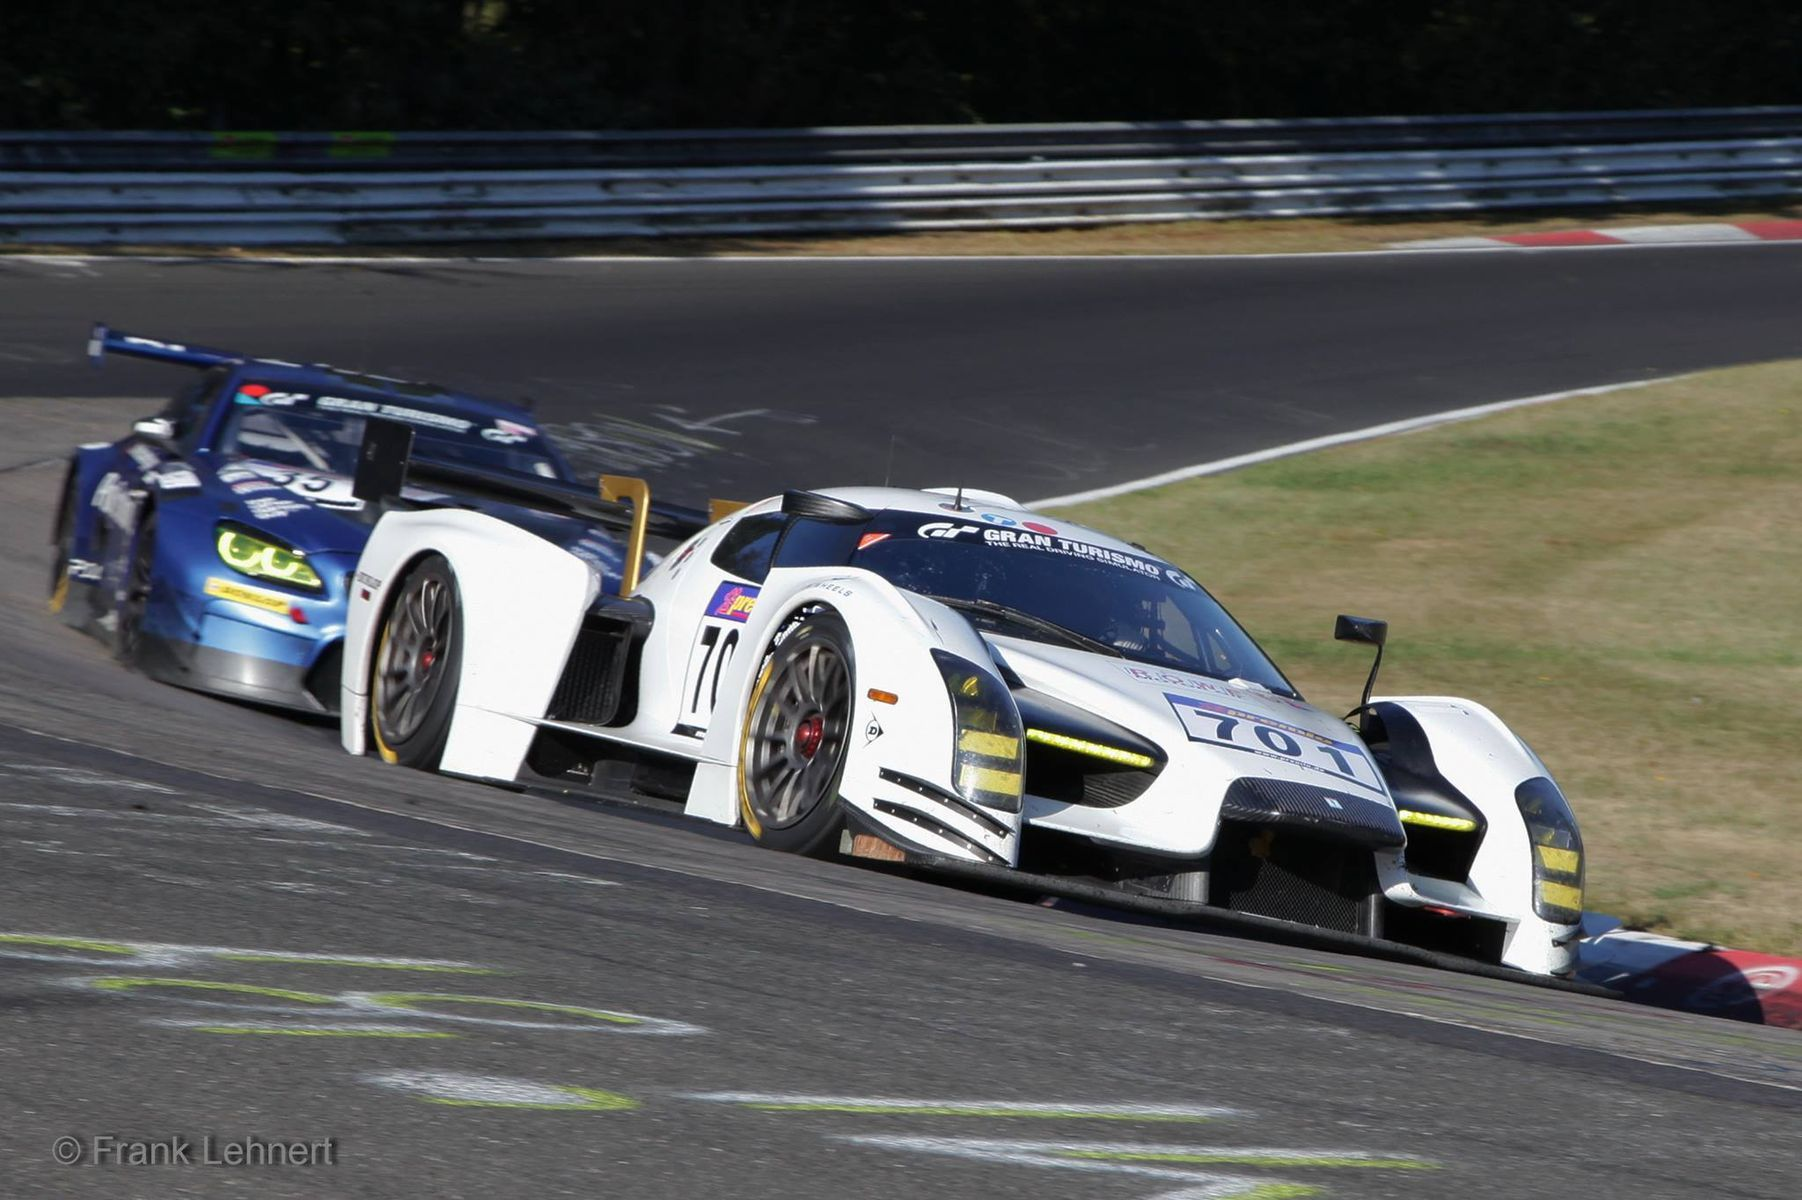 | Scuderia Cameron Glickenhaus SCG003 on Forgeline One Piece Forged Monoblock GTD1 Wheels 4th at Nurburgring VLN 8